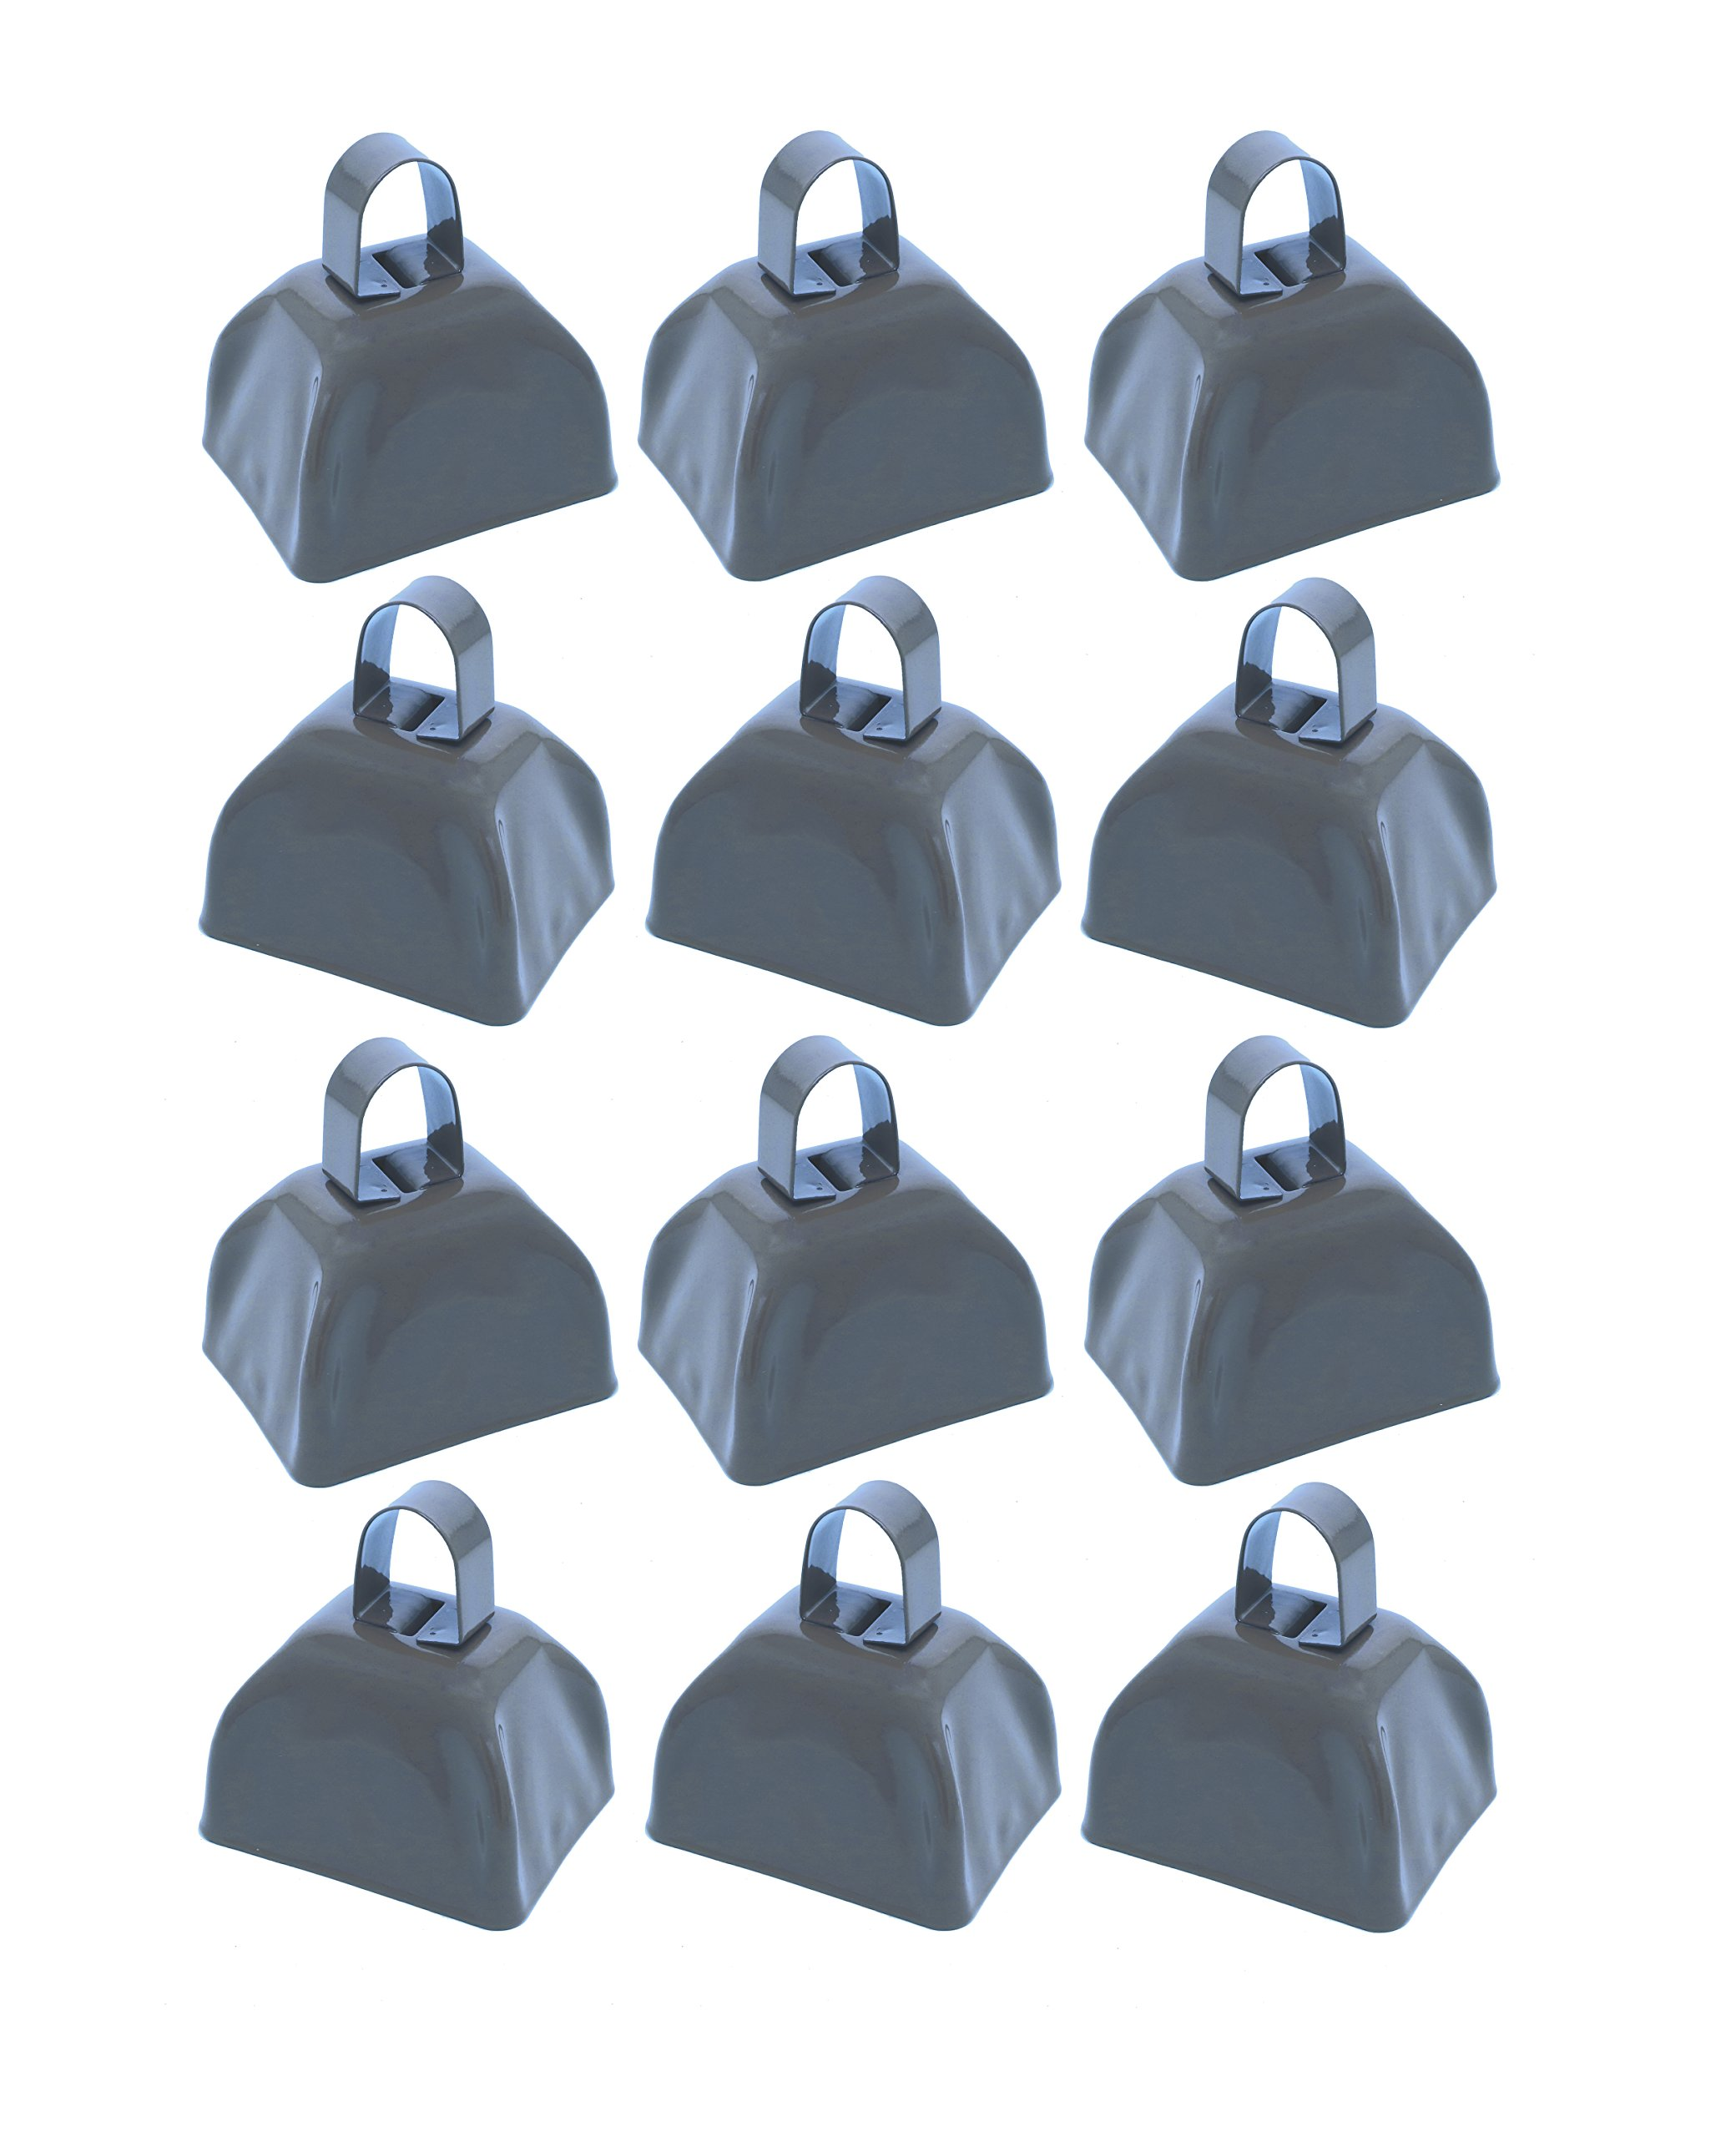 School Cowbells - Set Of 12 Metal Cowbell Noisemakers (Select A Color) (Silver)